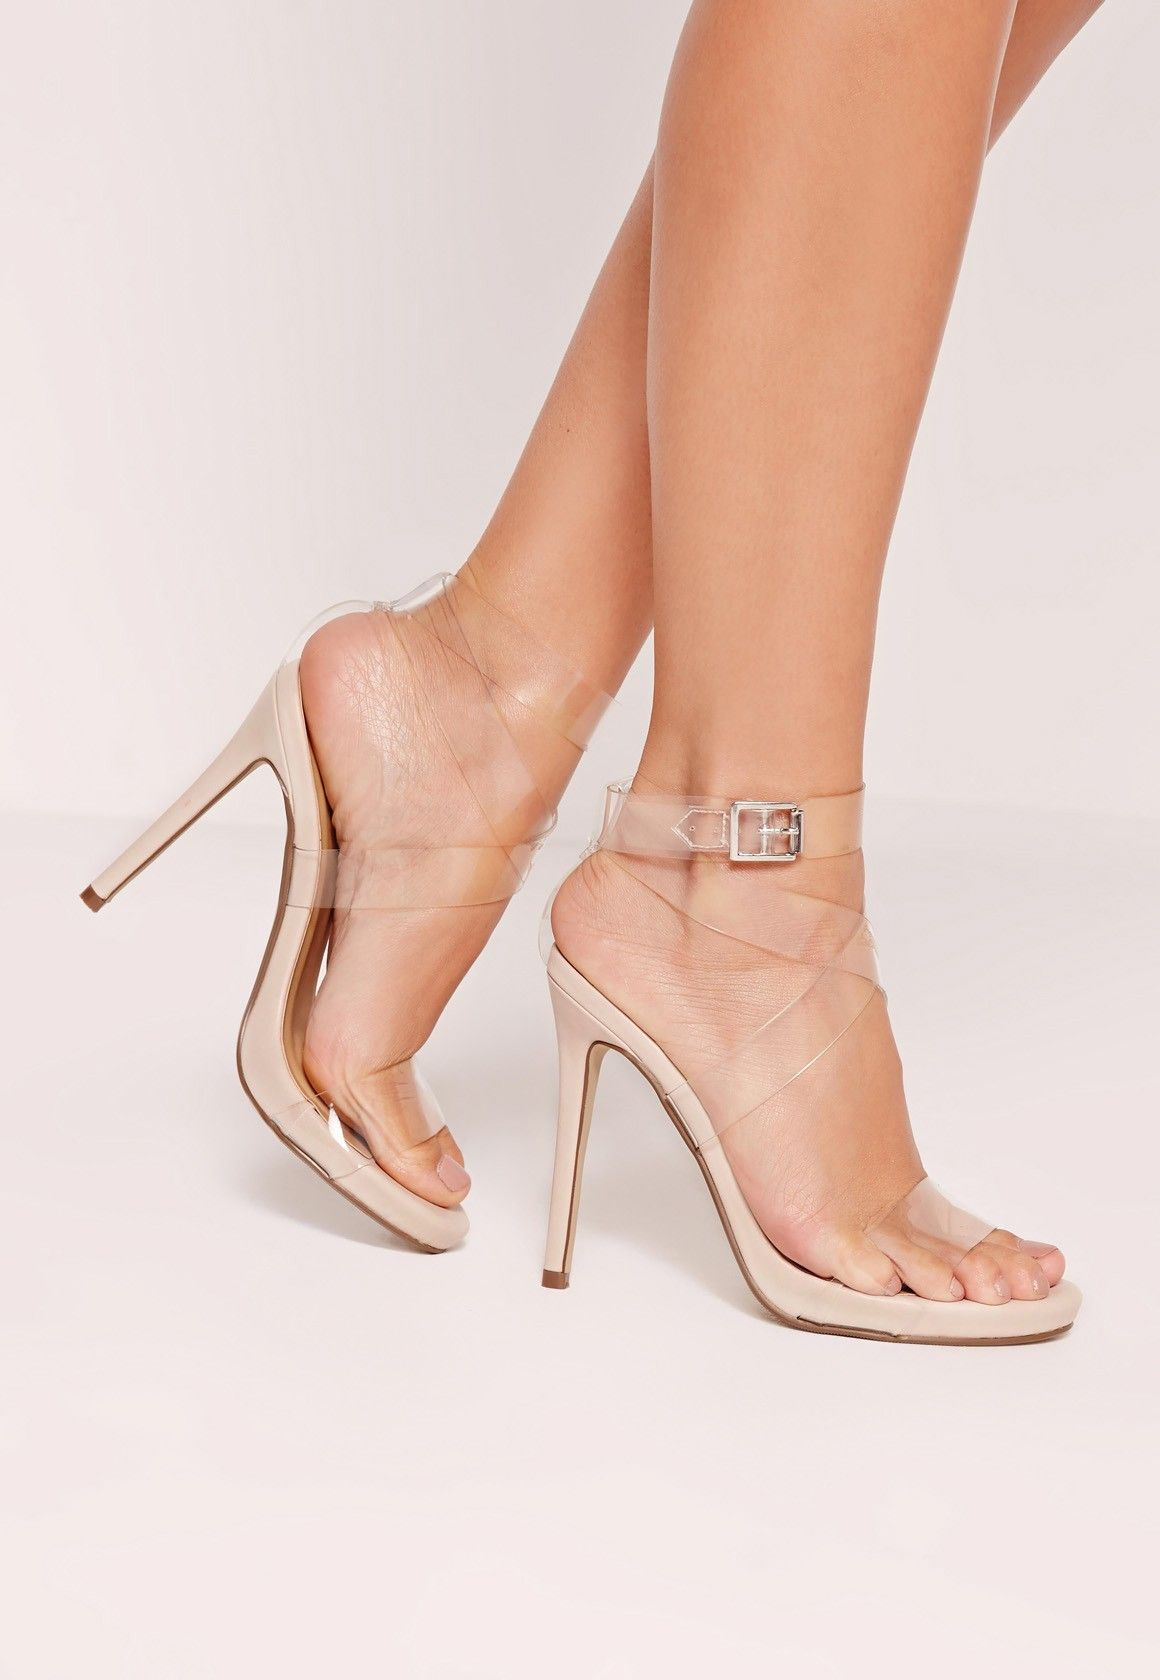 1f28de8c98106 Missguided - Transparent Cross Strap Heeled Sandals Nude